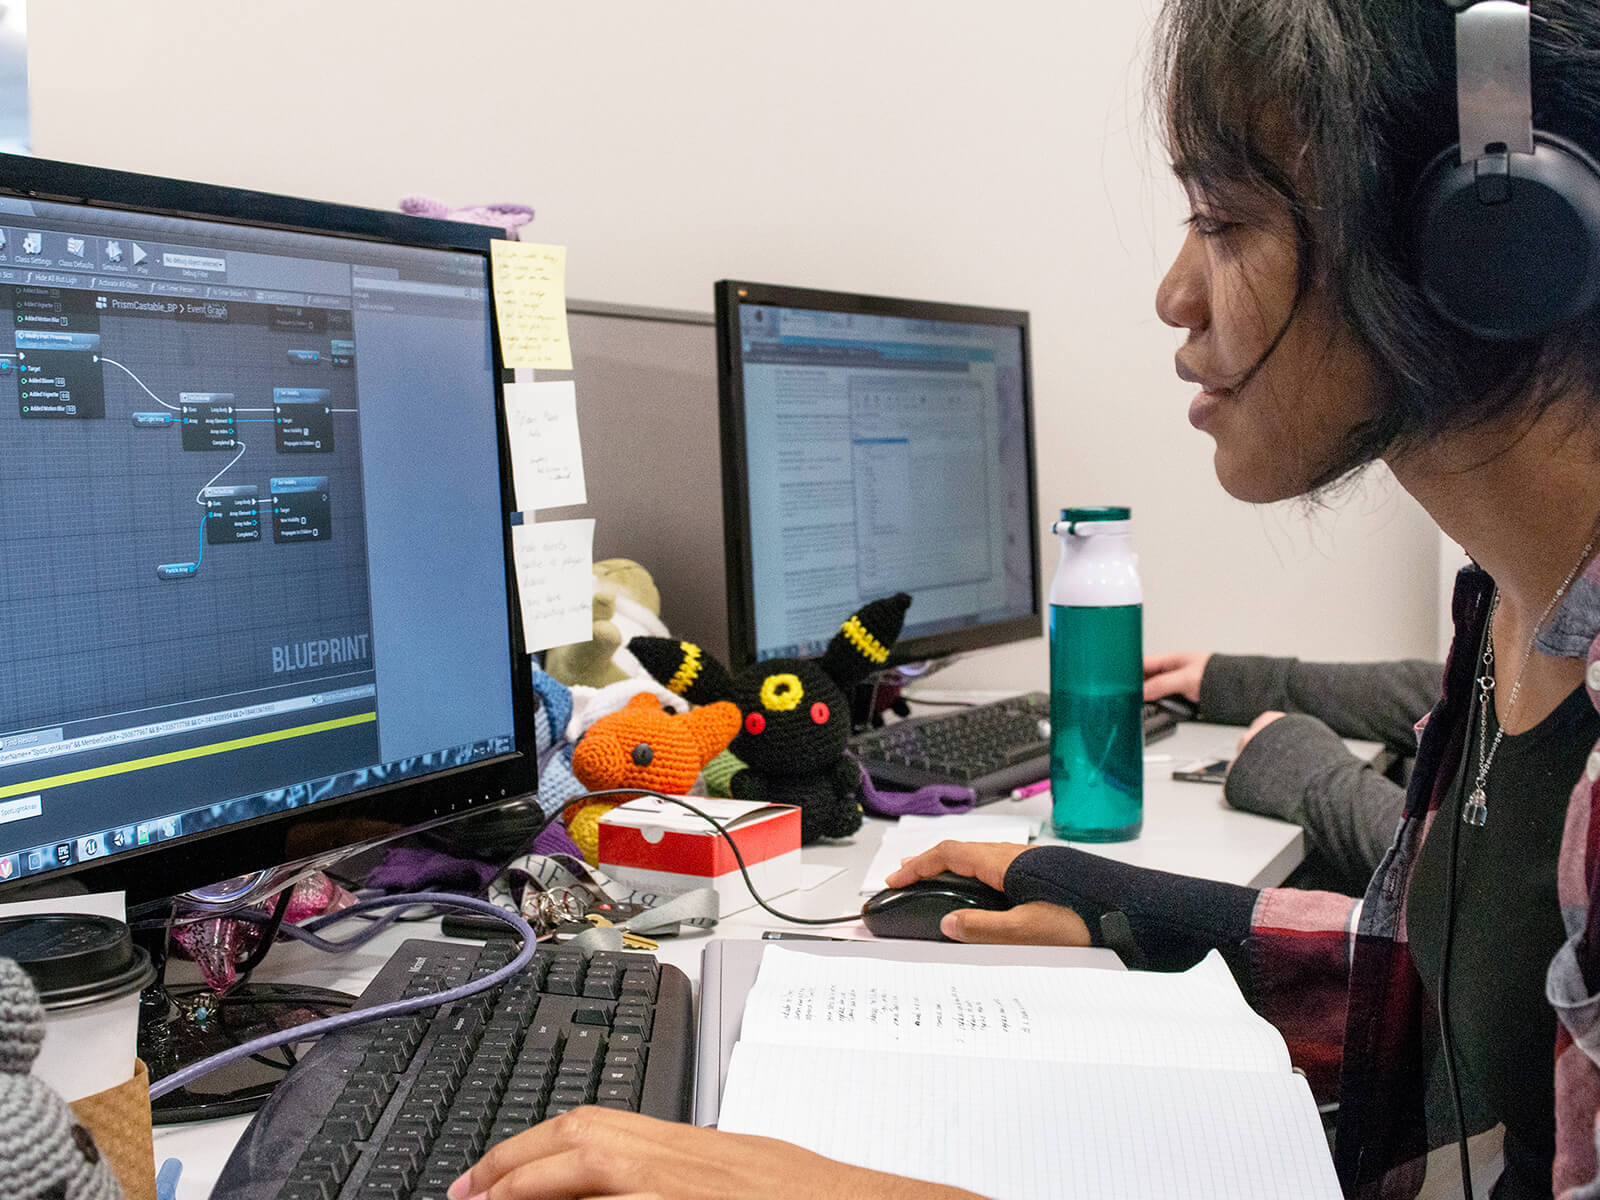 A DigiPen game design student works on her computer surrounded by knit plush toys.